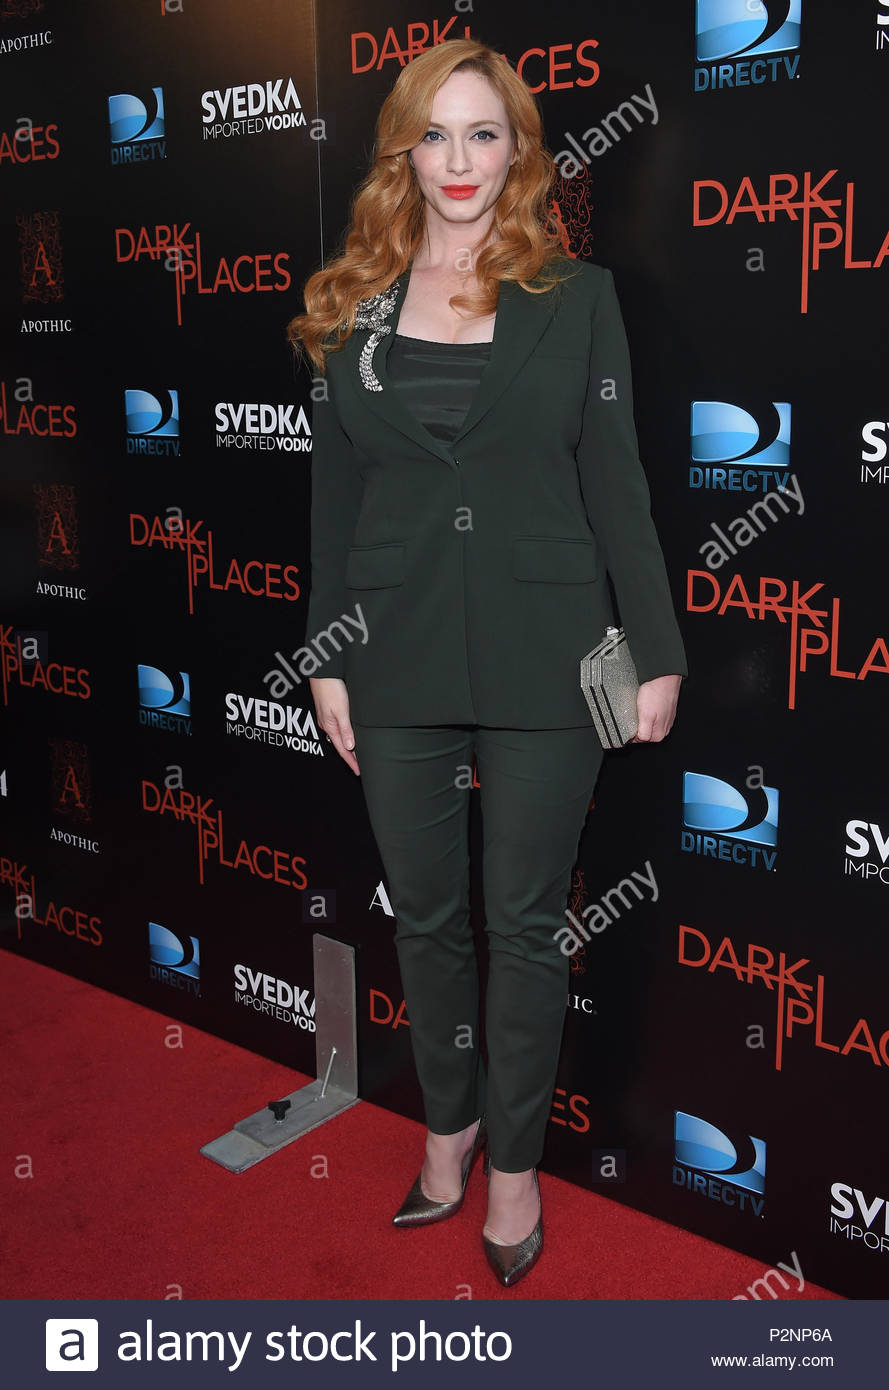 Christina Hendricks. 'Dark Places' Premiere. - Stock Image